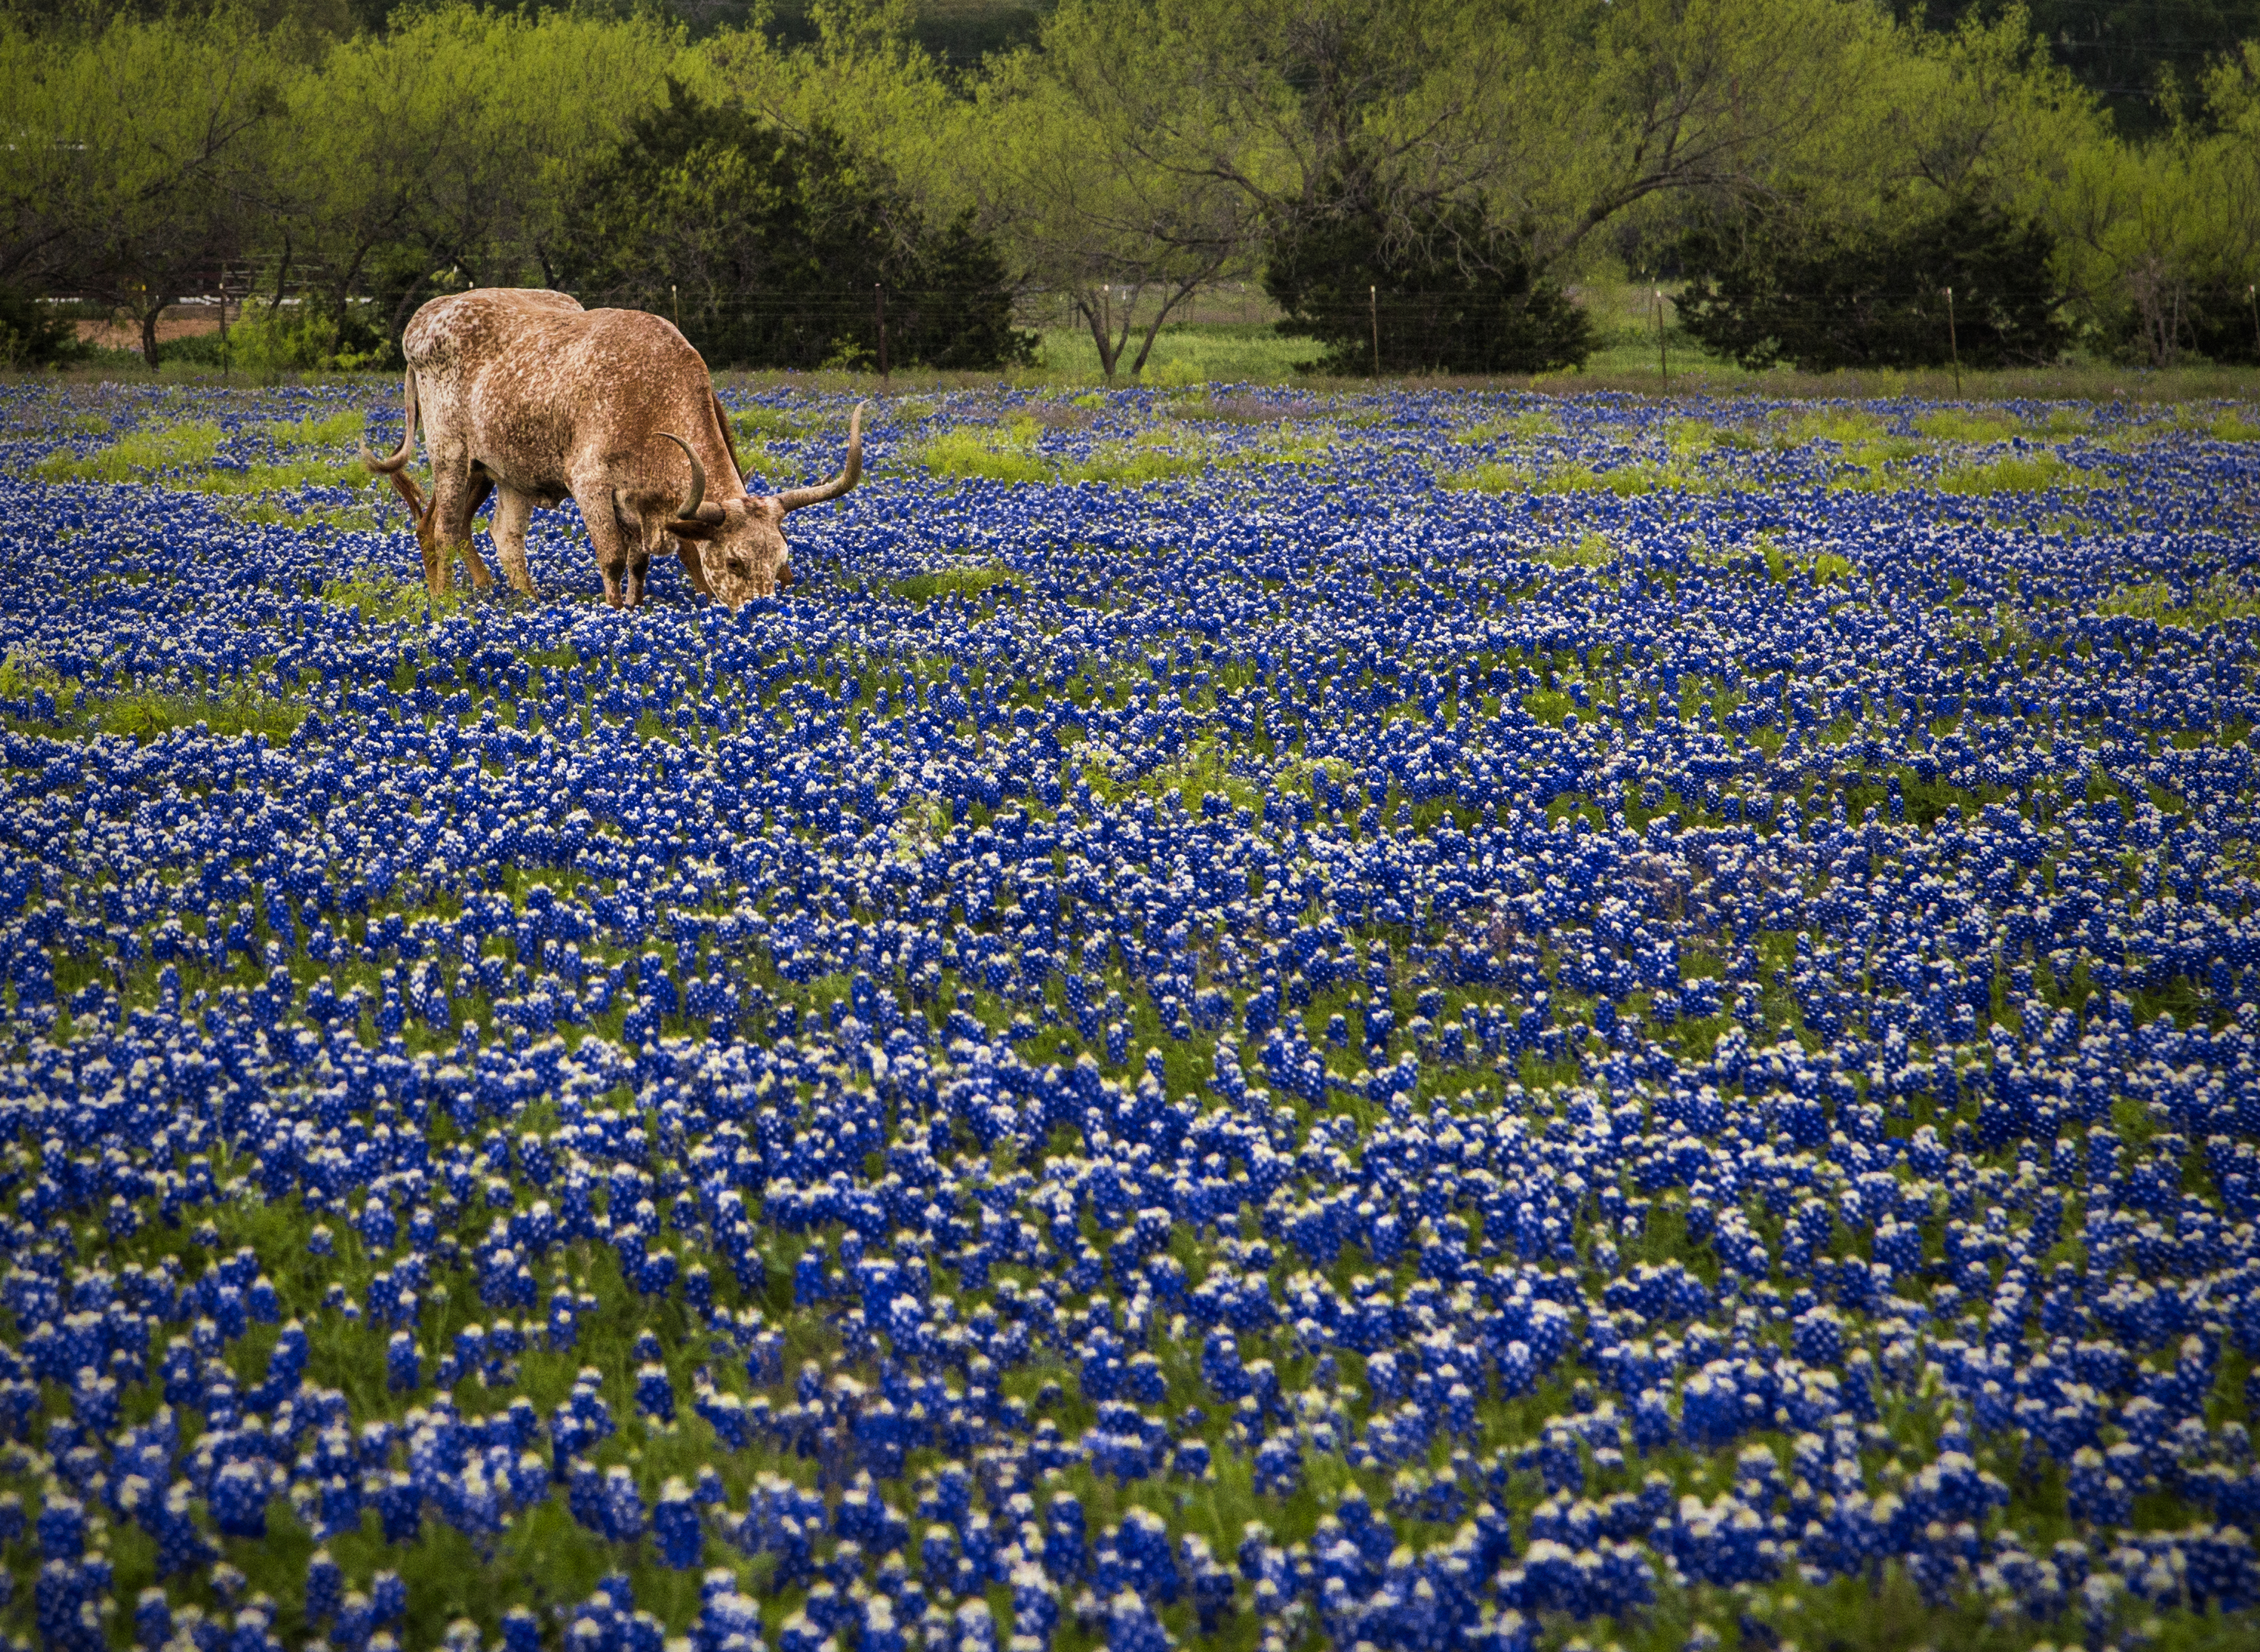 Do You Know Texas Has 5 State Flowers